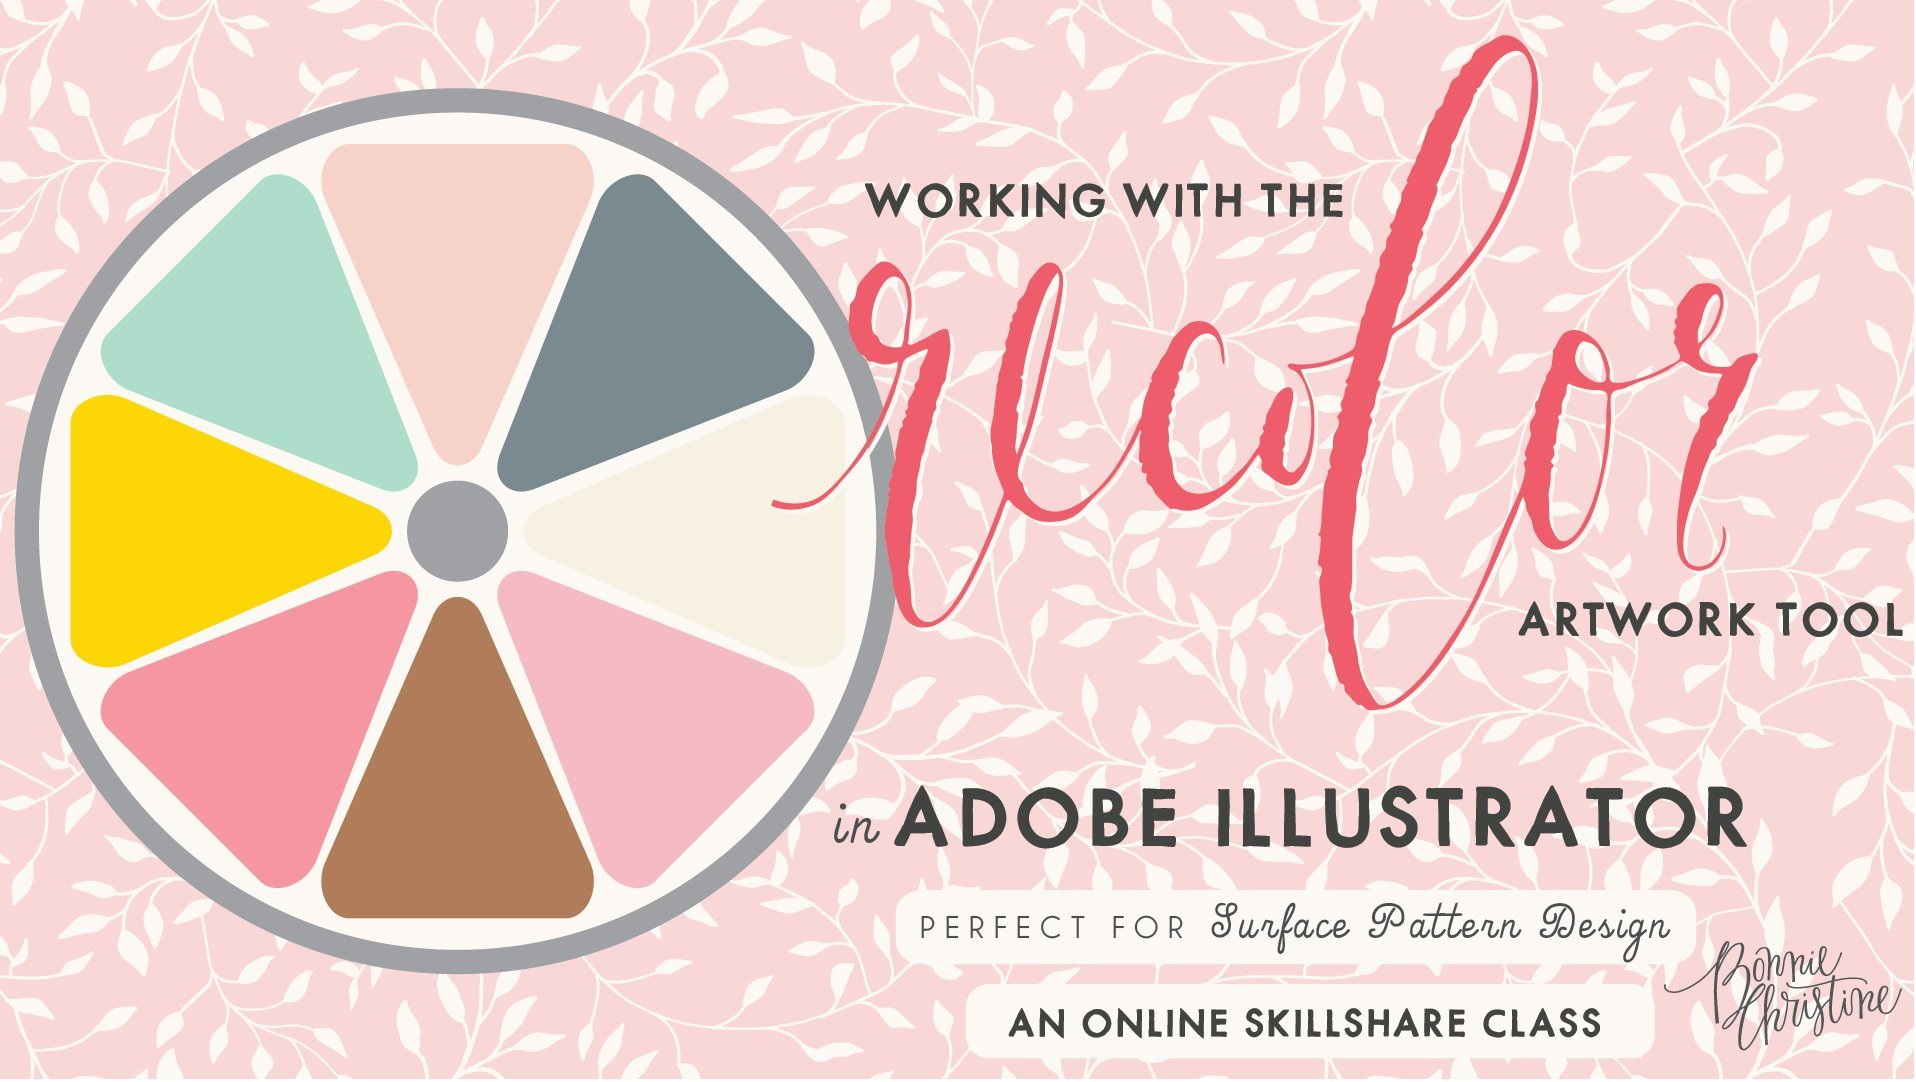 Color adobe online - Master Color With The Recolor Artwork Tool In Adobe Illustrator Bonnie Christine Skillshare